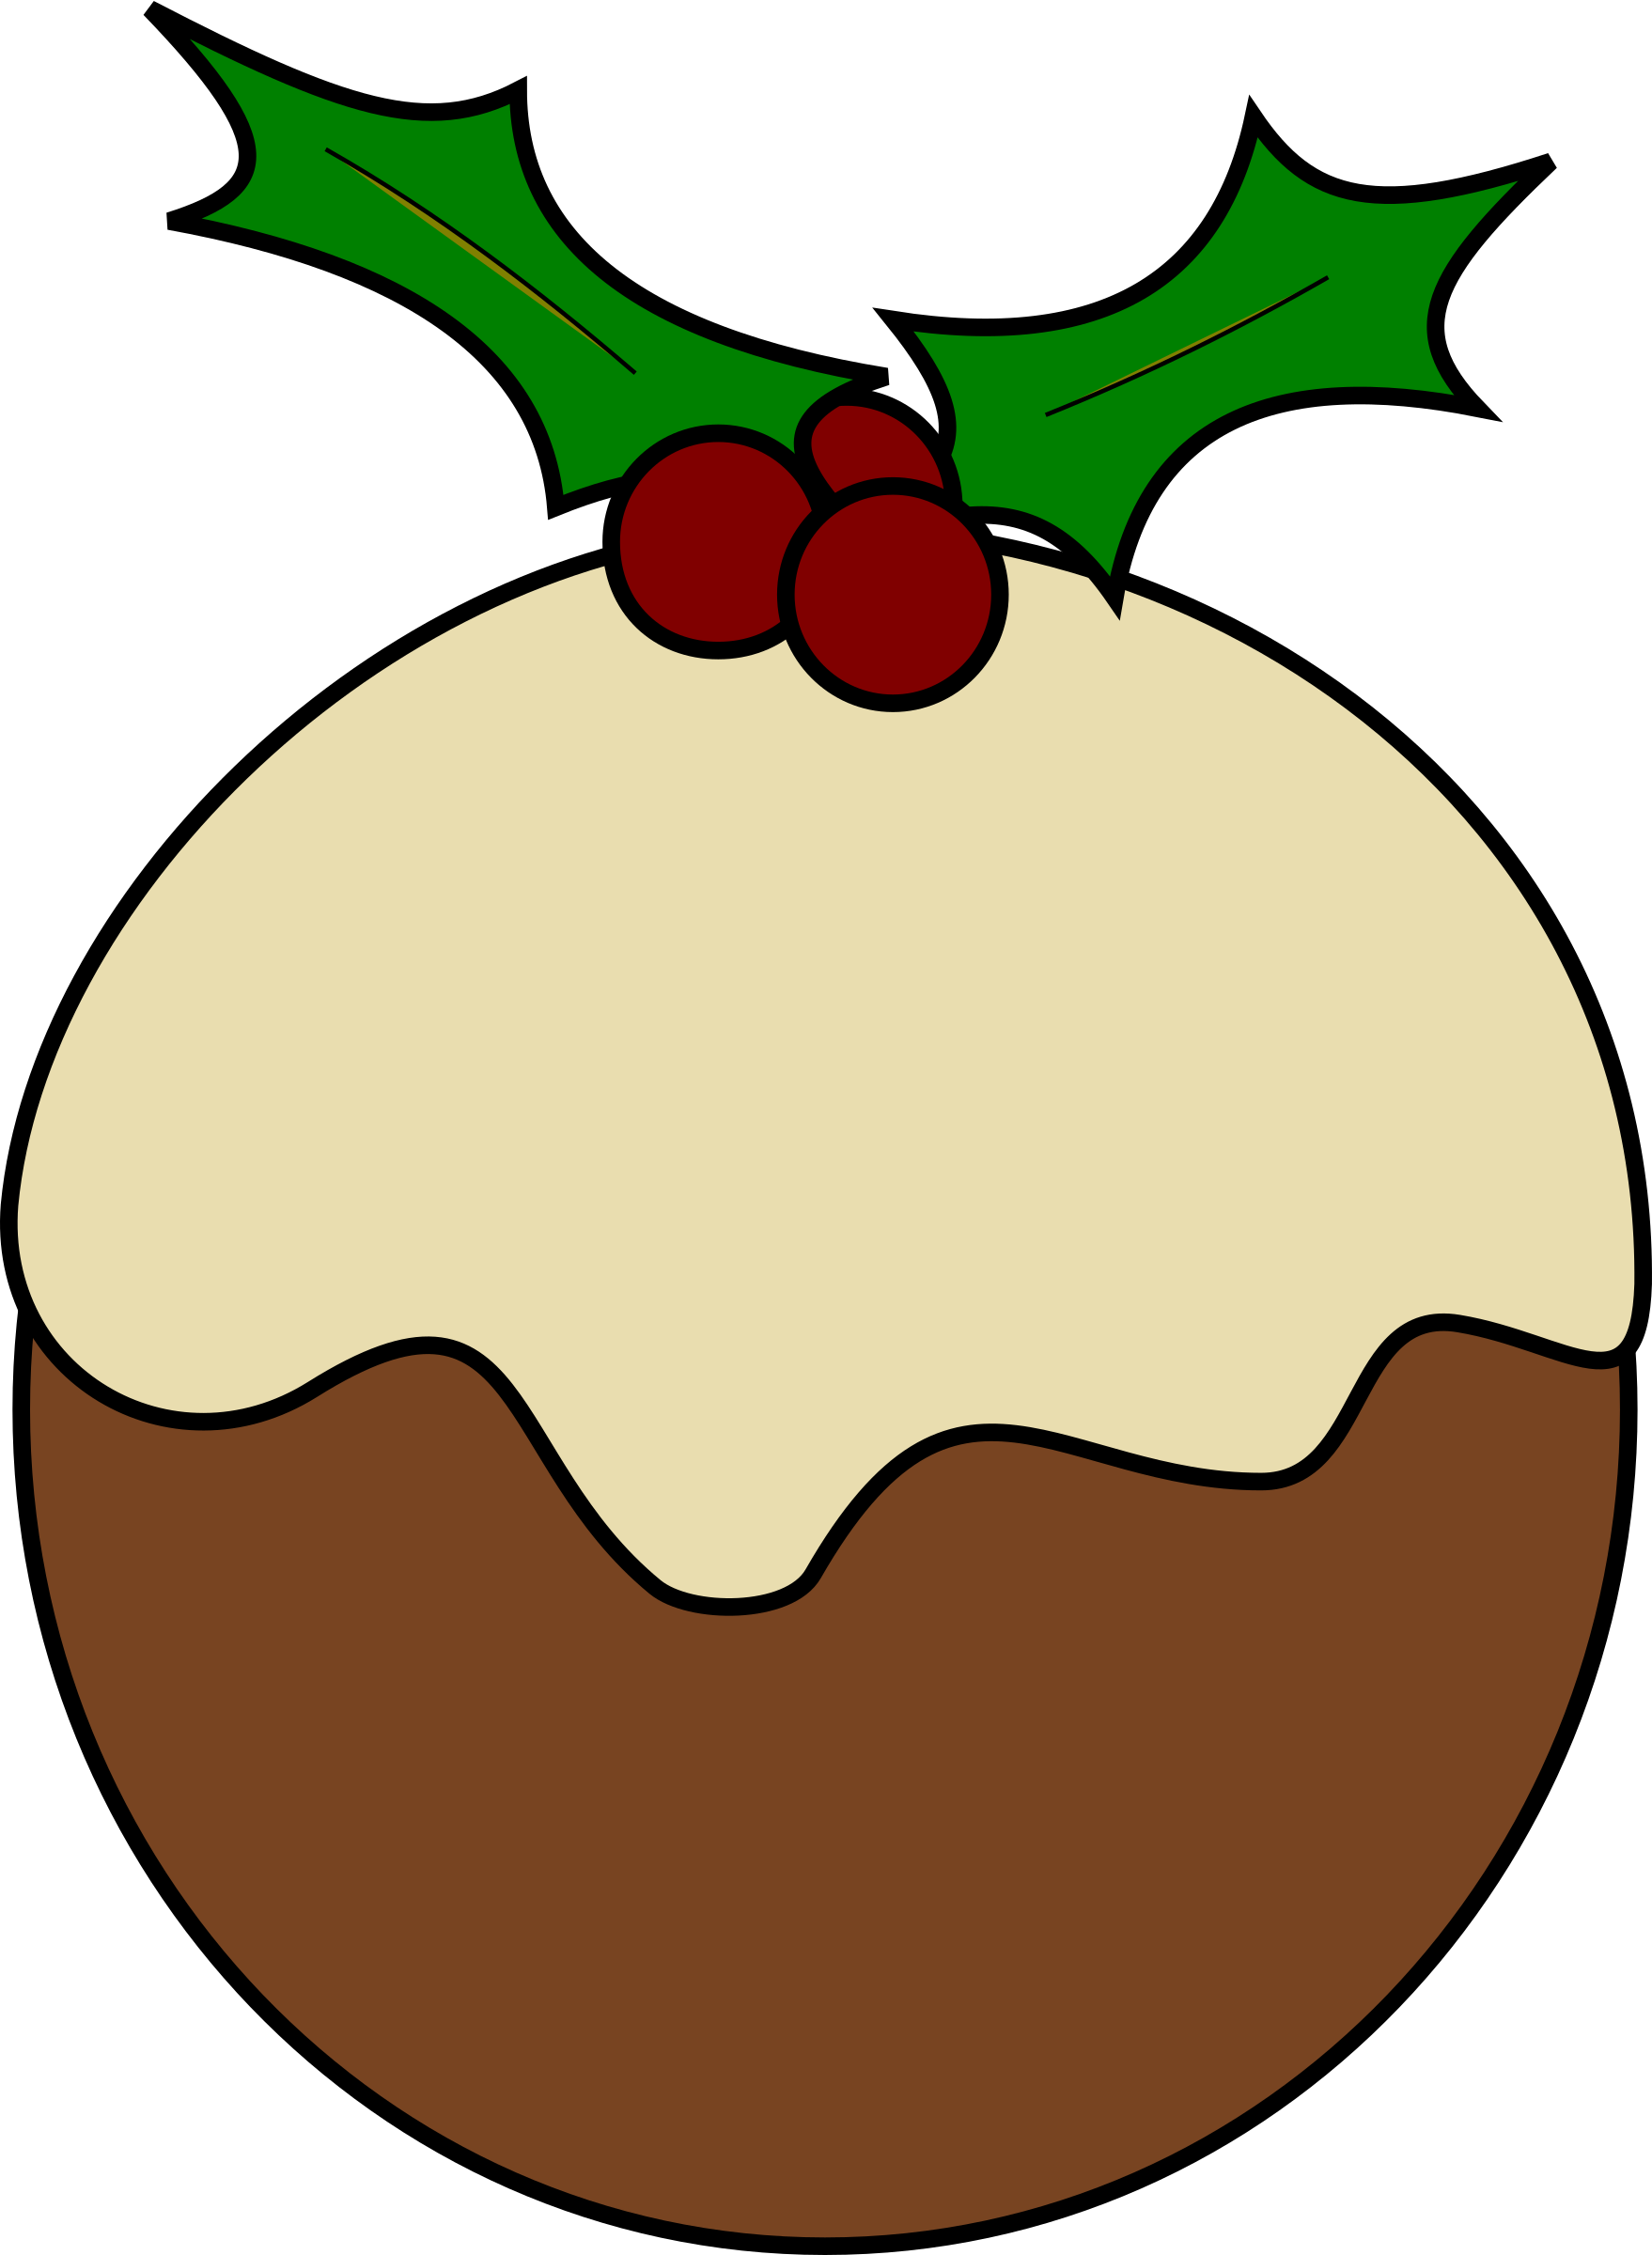 Christmas pudding big image. Pear clipart line drawing